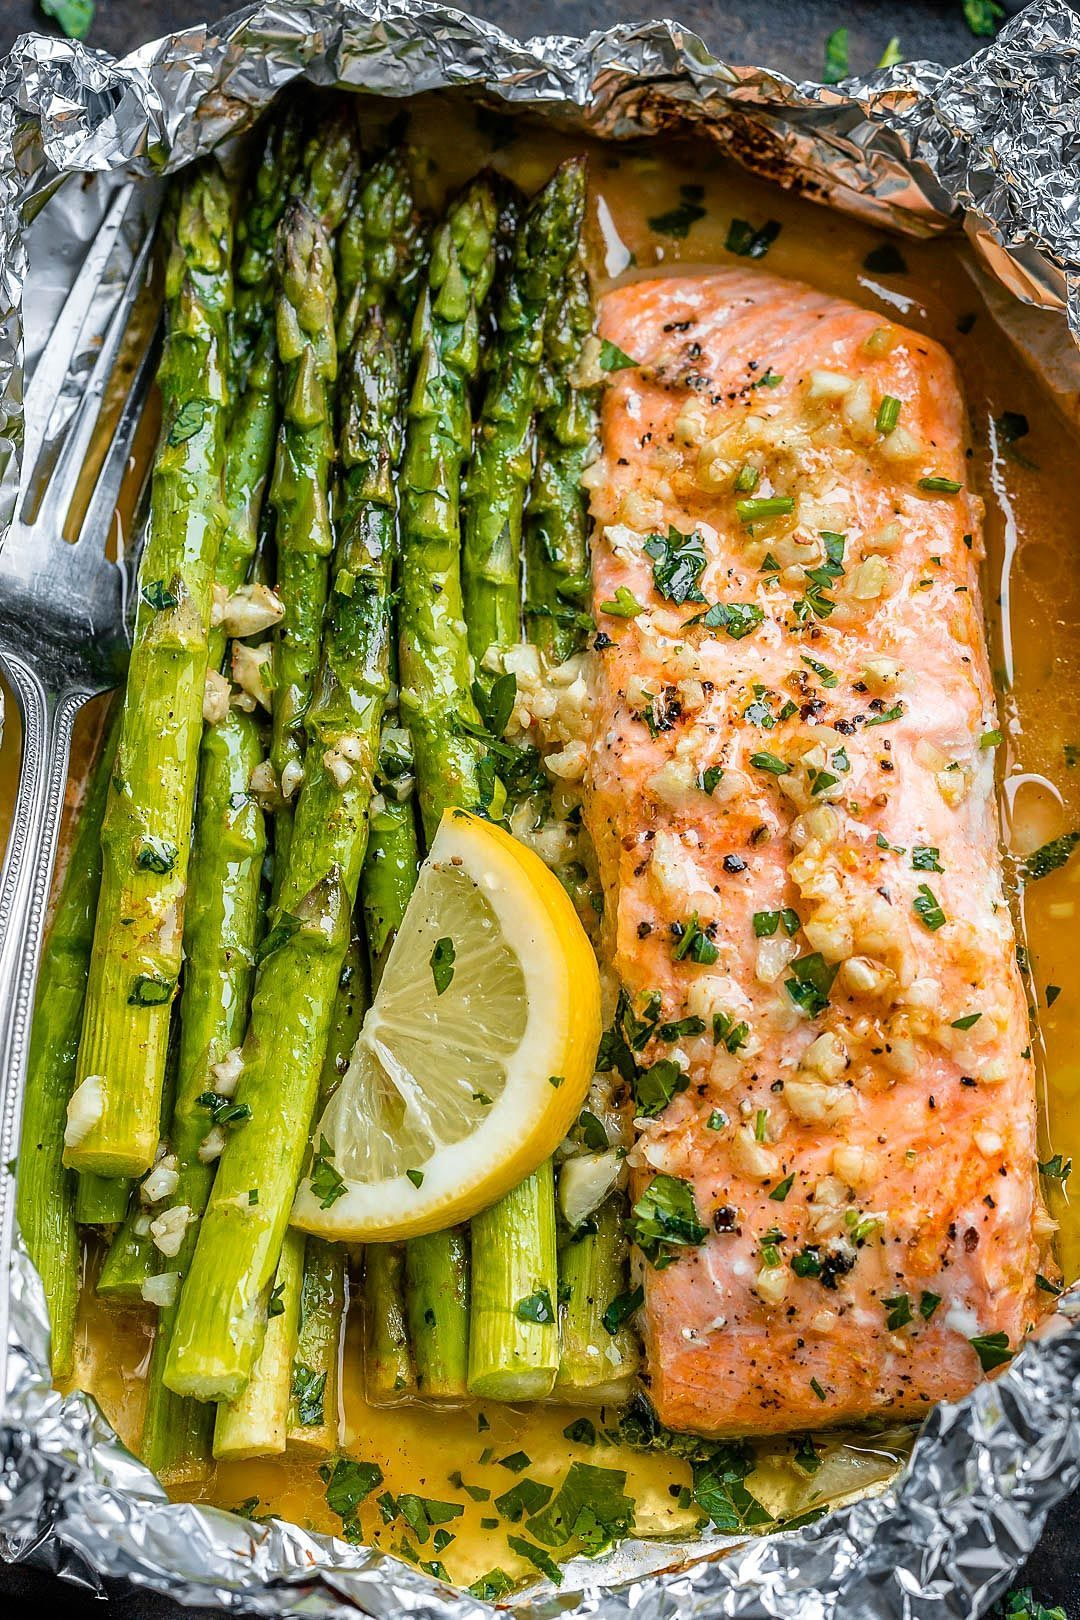 Salmon and Asparagus Foil Packs with Garlic Lemon Butter Sauce - Best Image Portal